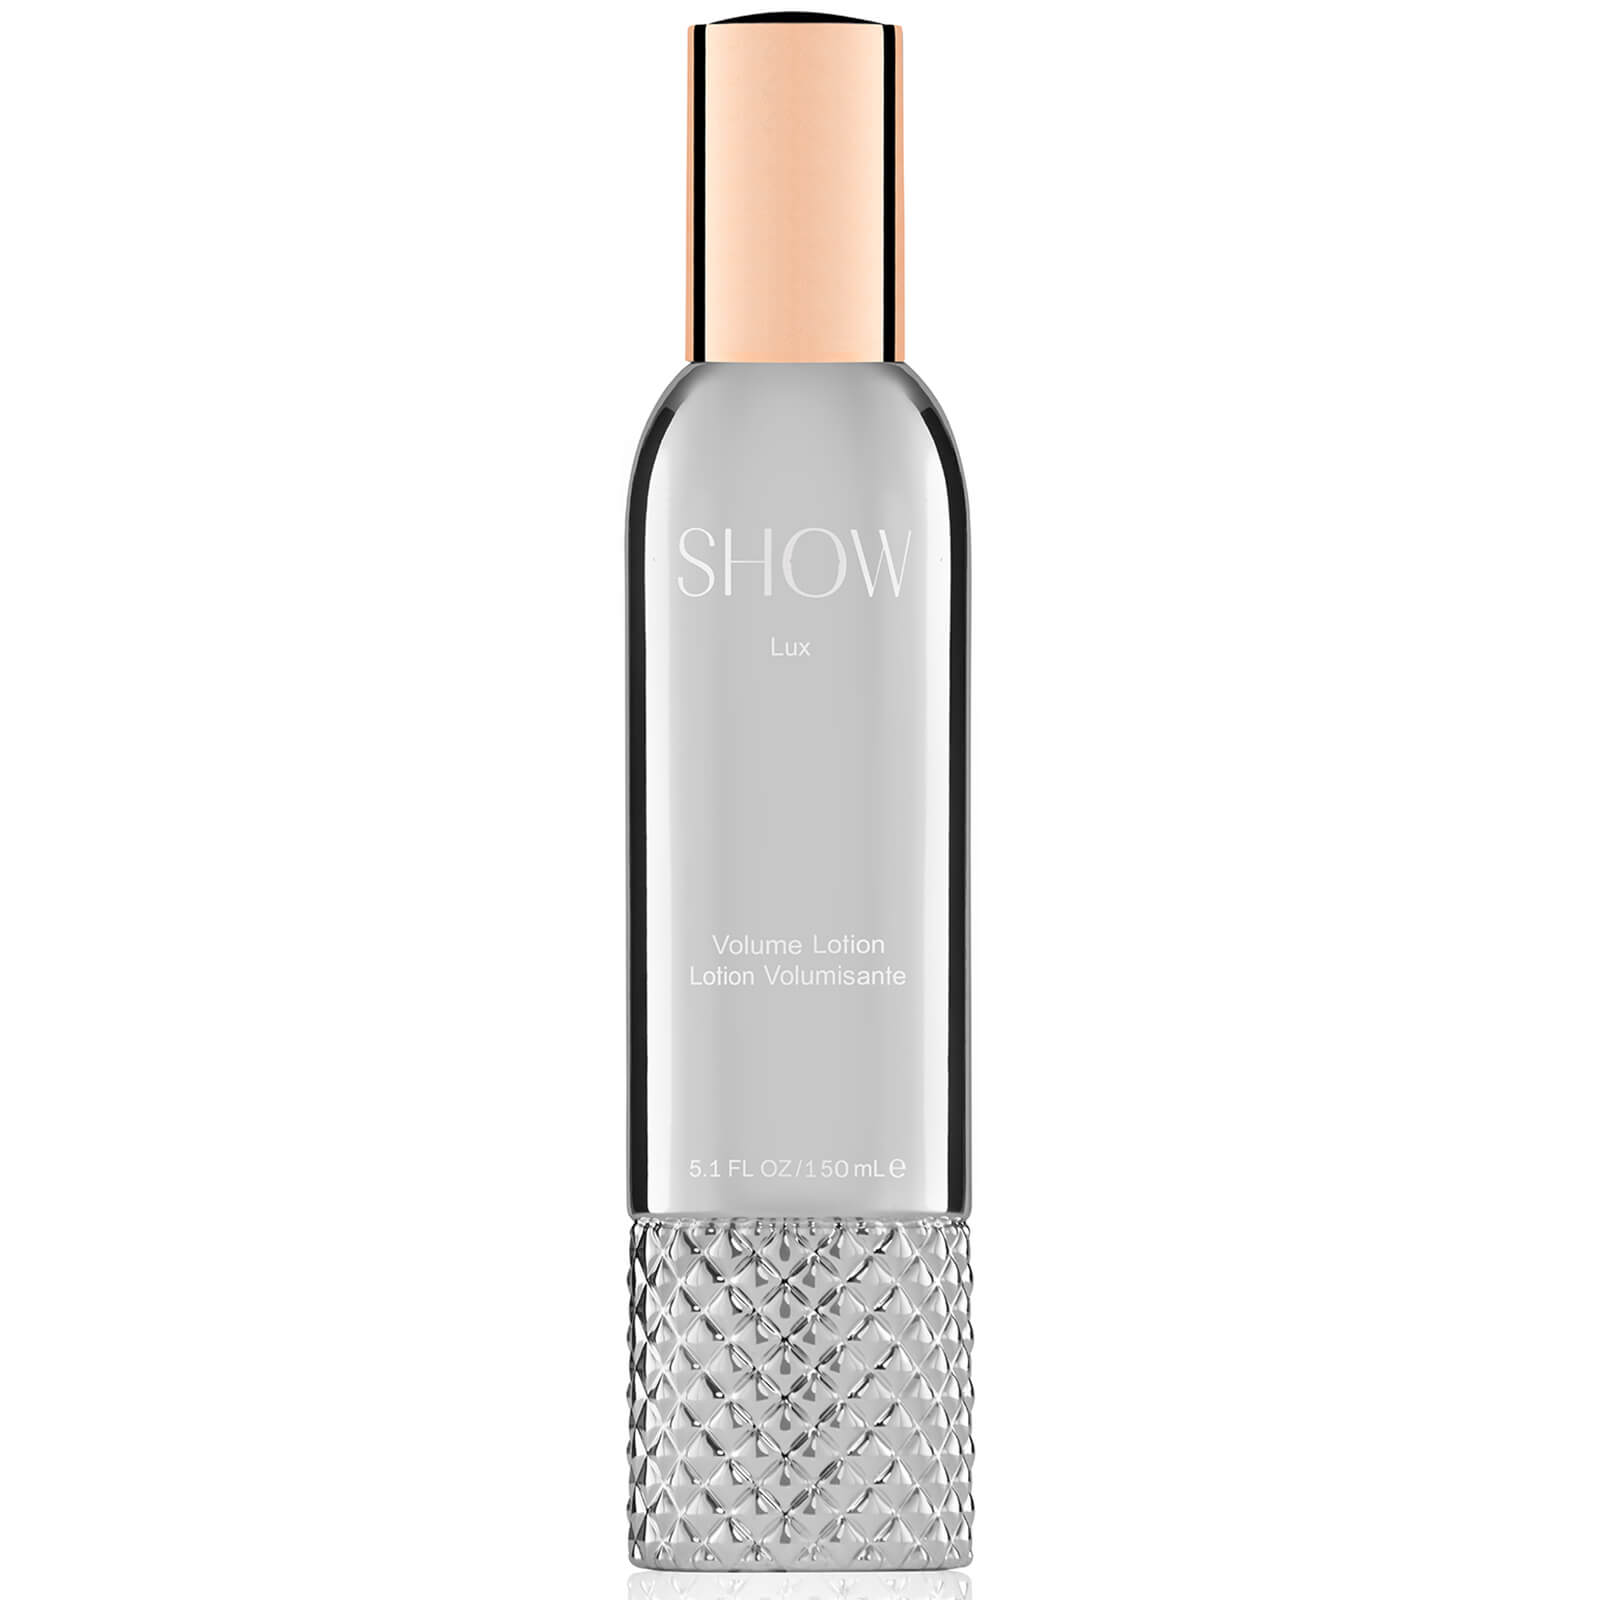 SHOW Beauty Lux Volume Lotion (150ml)